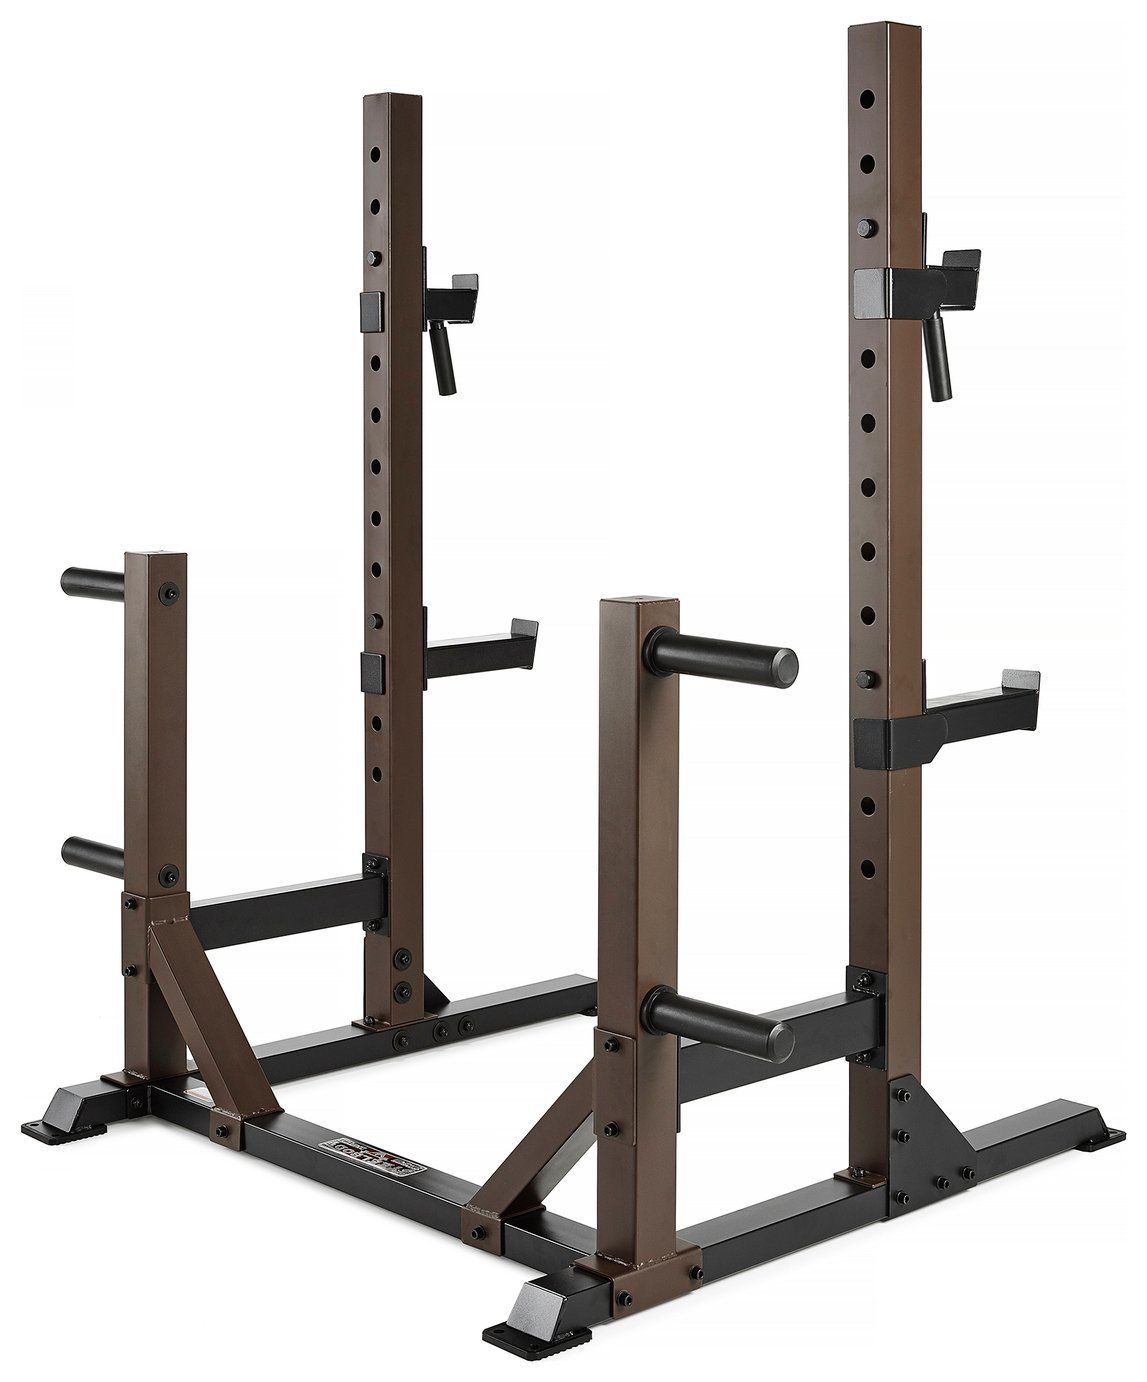 Steelbody By Marcy Squat Rack Base Trainer Squat Rack Barbell Workout Barbell Weights